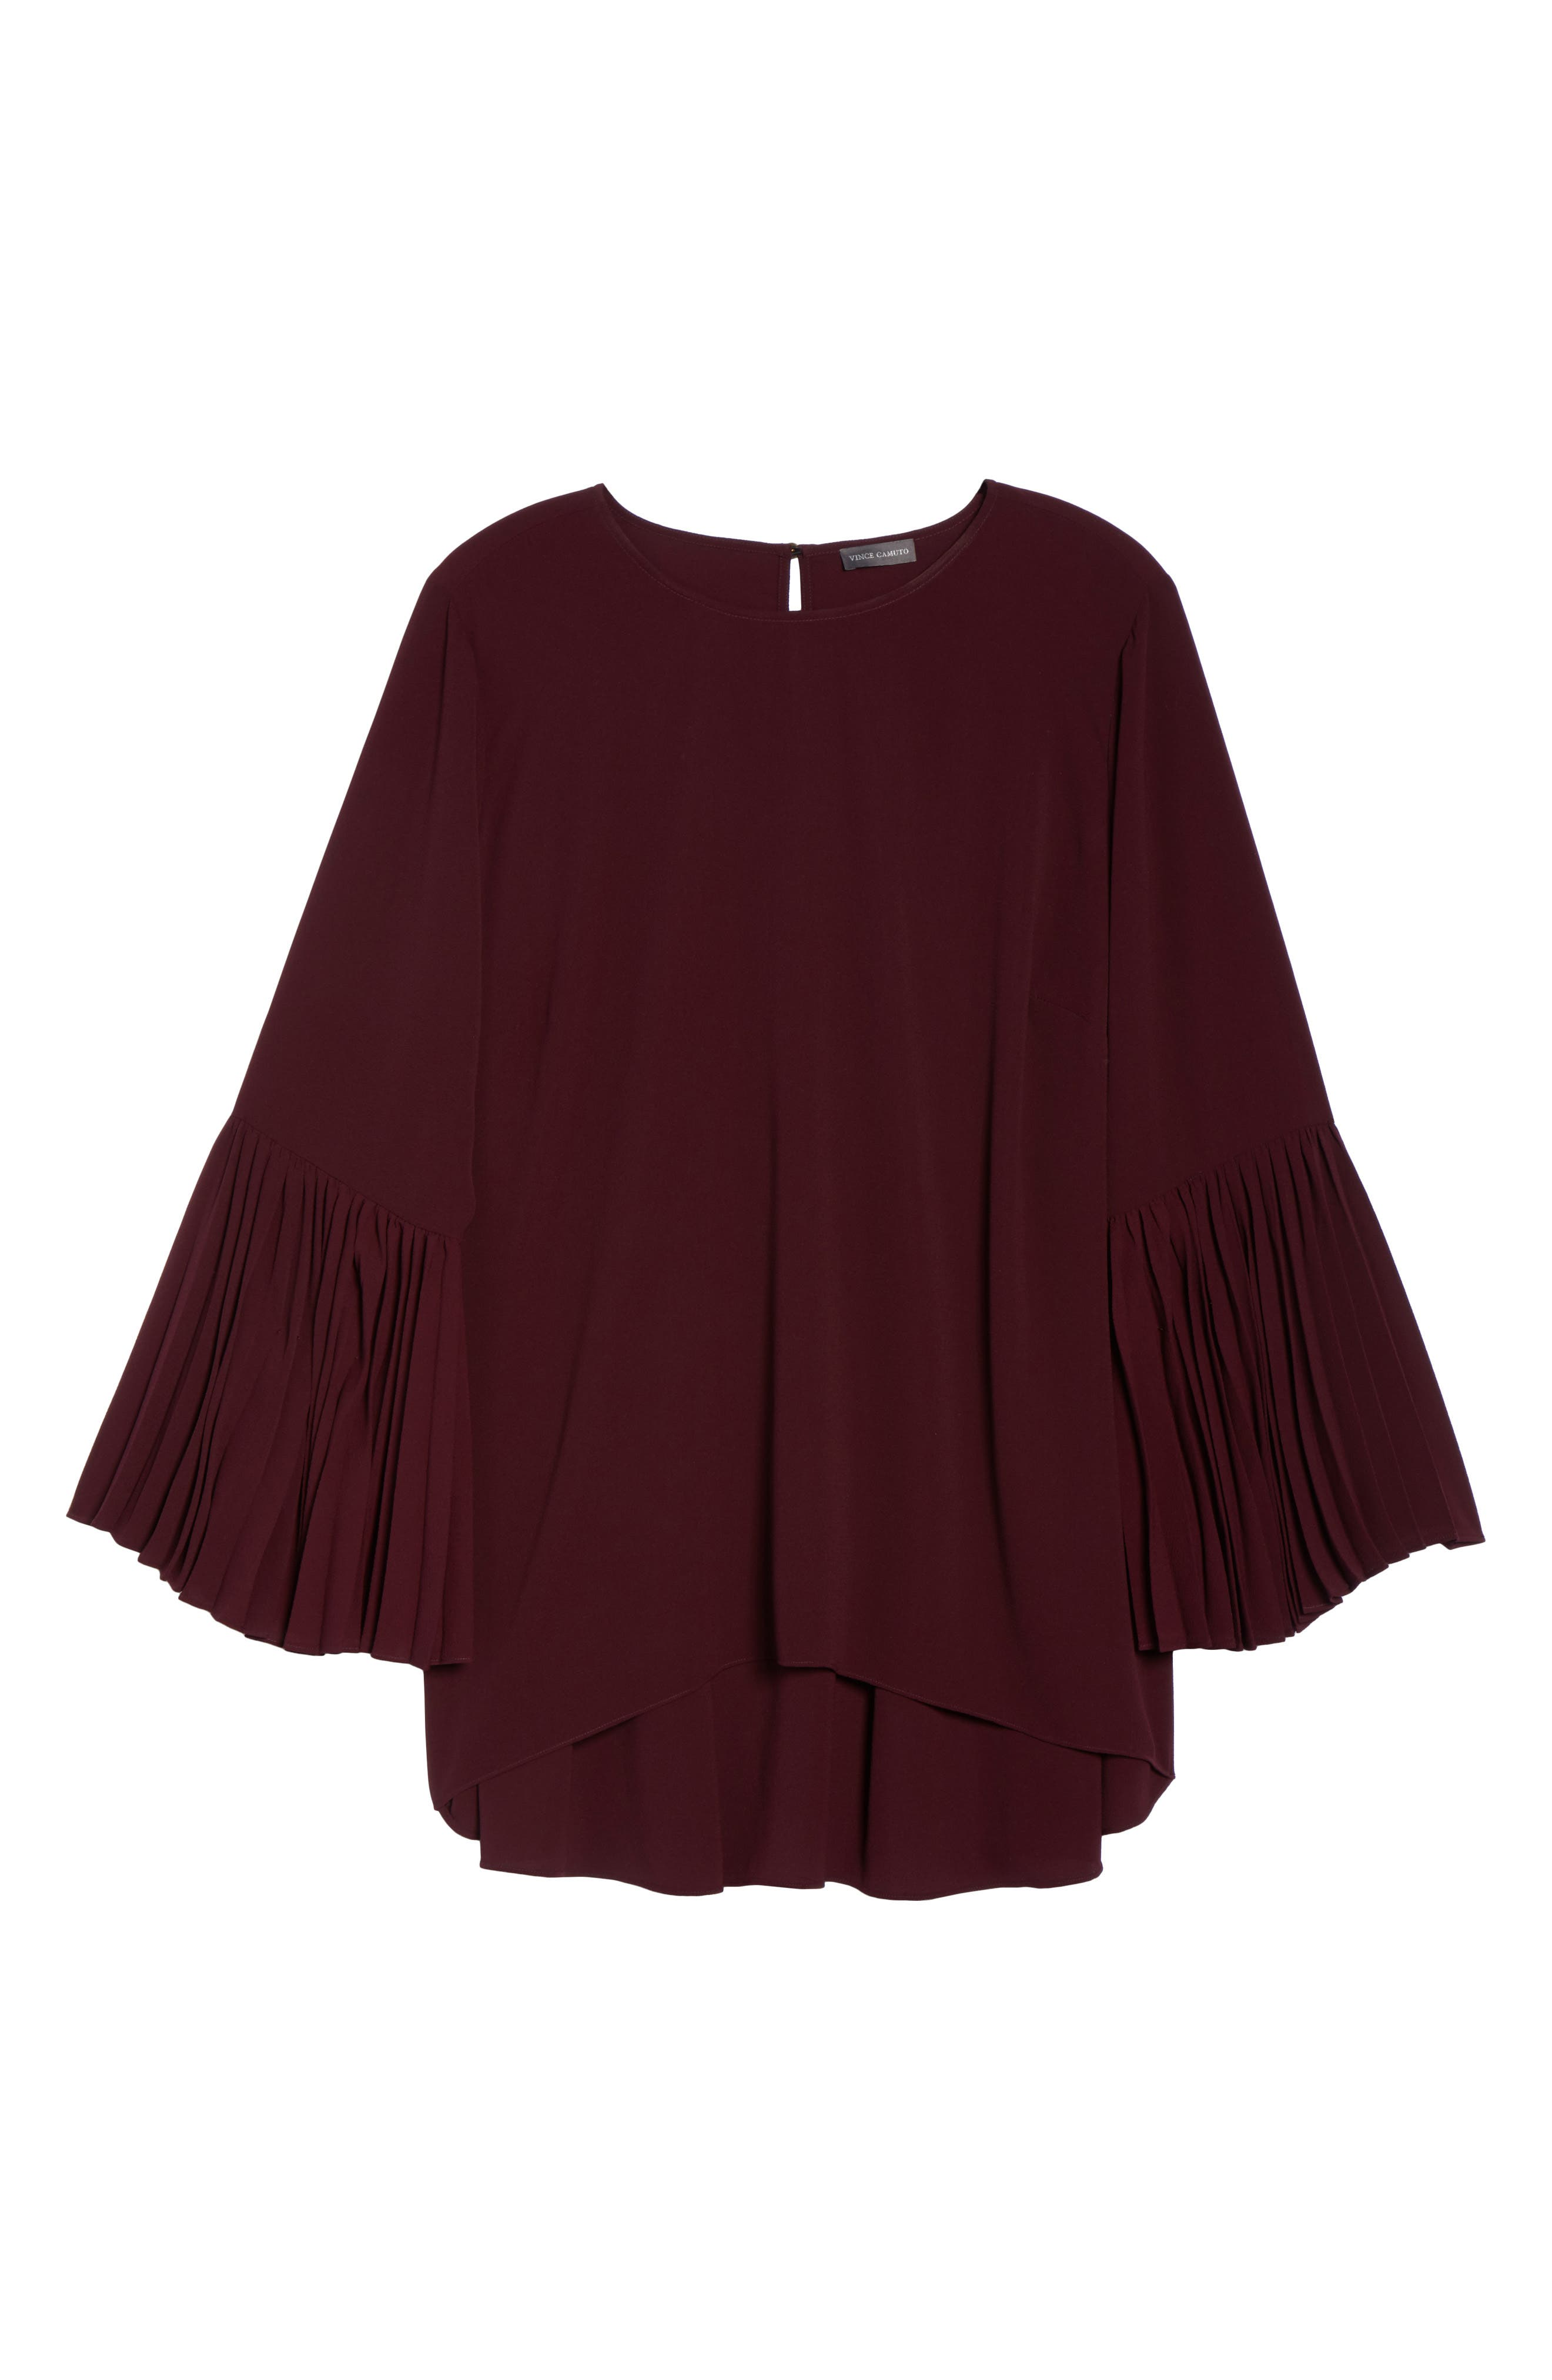 Pleated Bell Sleeve High/Low Shirt,                             Alternate thumbnail 6, color,                             Deep Claret